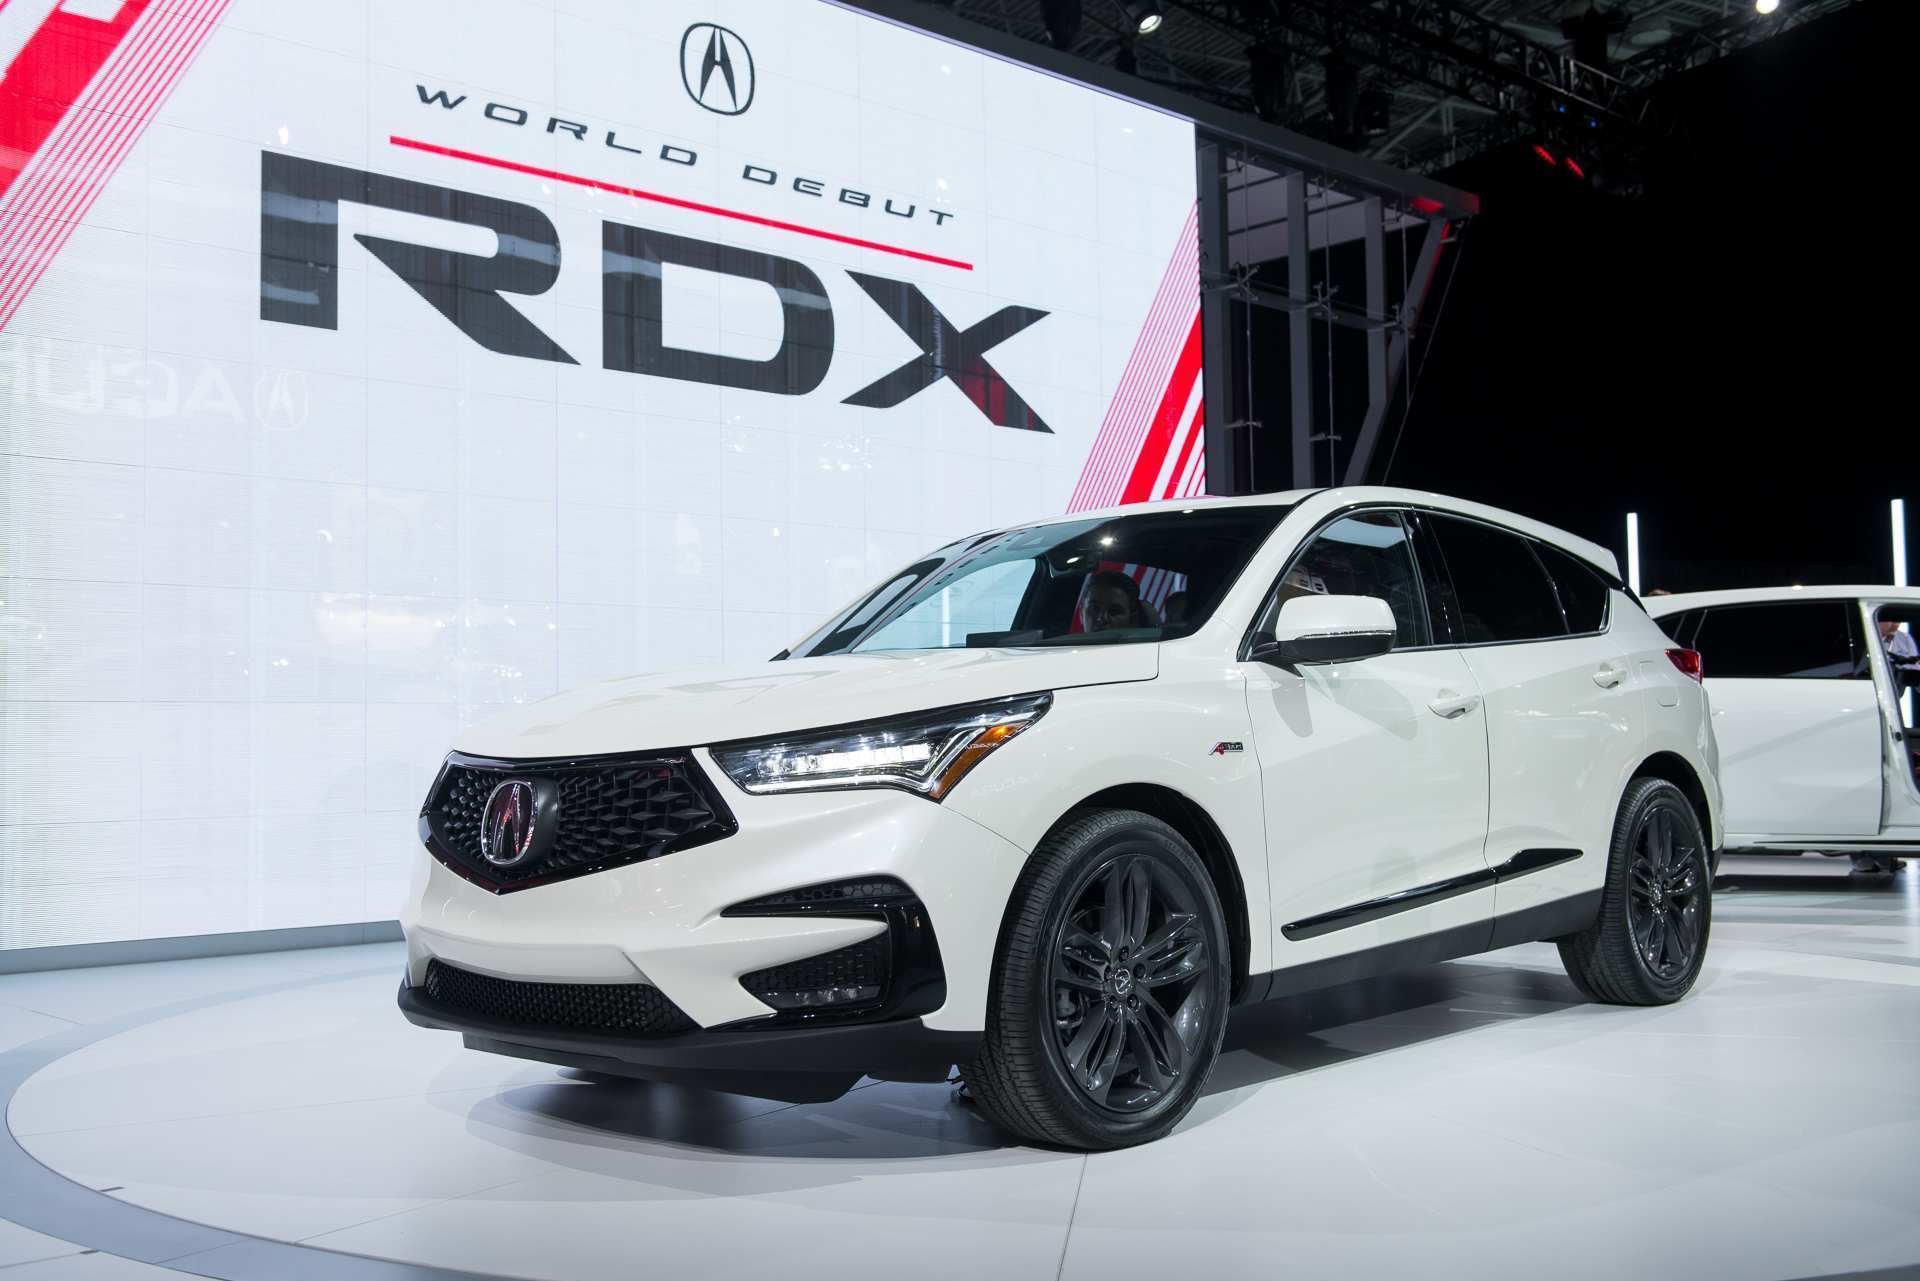 95 Concept of The Acura Rdx 2019 Release Date Usa Spy Shoot Rumors by The Acura Rdx 2019 Release Date Usa Spy Shoot